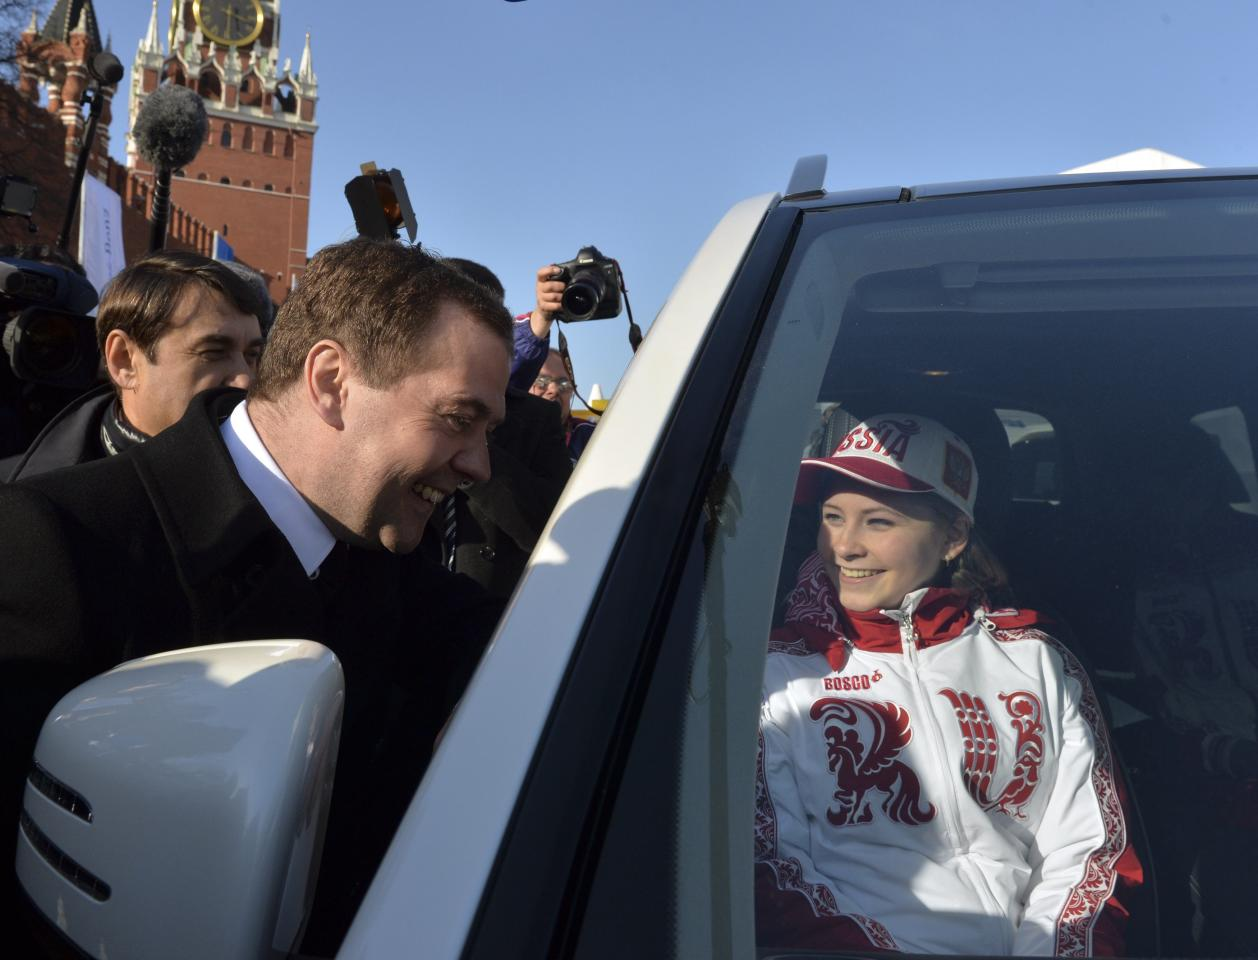 Russia's Prime Minister Dmitry Medvedev and figure skating gold medal winner Yulia Lipnitskaya (R) attend a ceremony to present automobiles to the Sochi 2014 Winter Olympics prize-holders representing Russia, by the Kremlin wall in central Moscow, February 27, 2014. REUTERS/Artem Zhitenev/RIA Novosti/Pool (RUSSIA - Tags: POLITICS SPORT OLYMPICS) ATTENTION EDITORS - THIS IMAGE HAS BEEN SUPPLIED BY A THIRD PARTY. IT IS DISTRIBUTED, EXACTLY AS RECEIVED BY REUTERS, AS A SERVICE TO CLIENTS